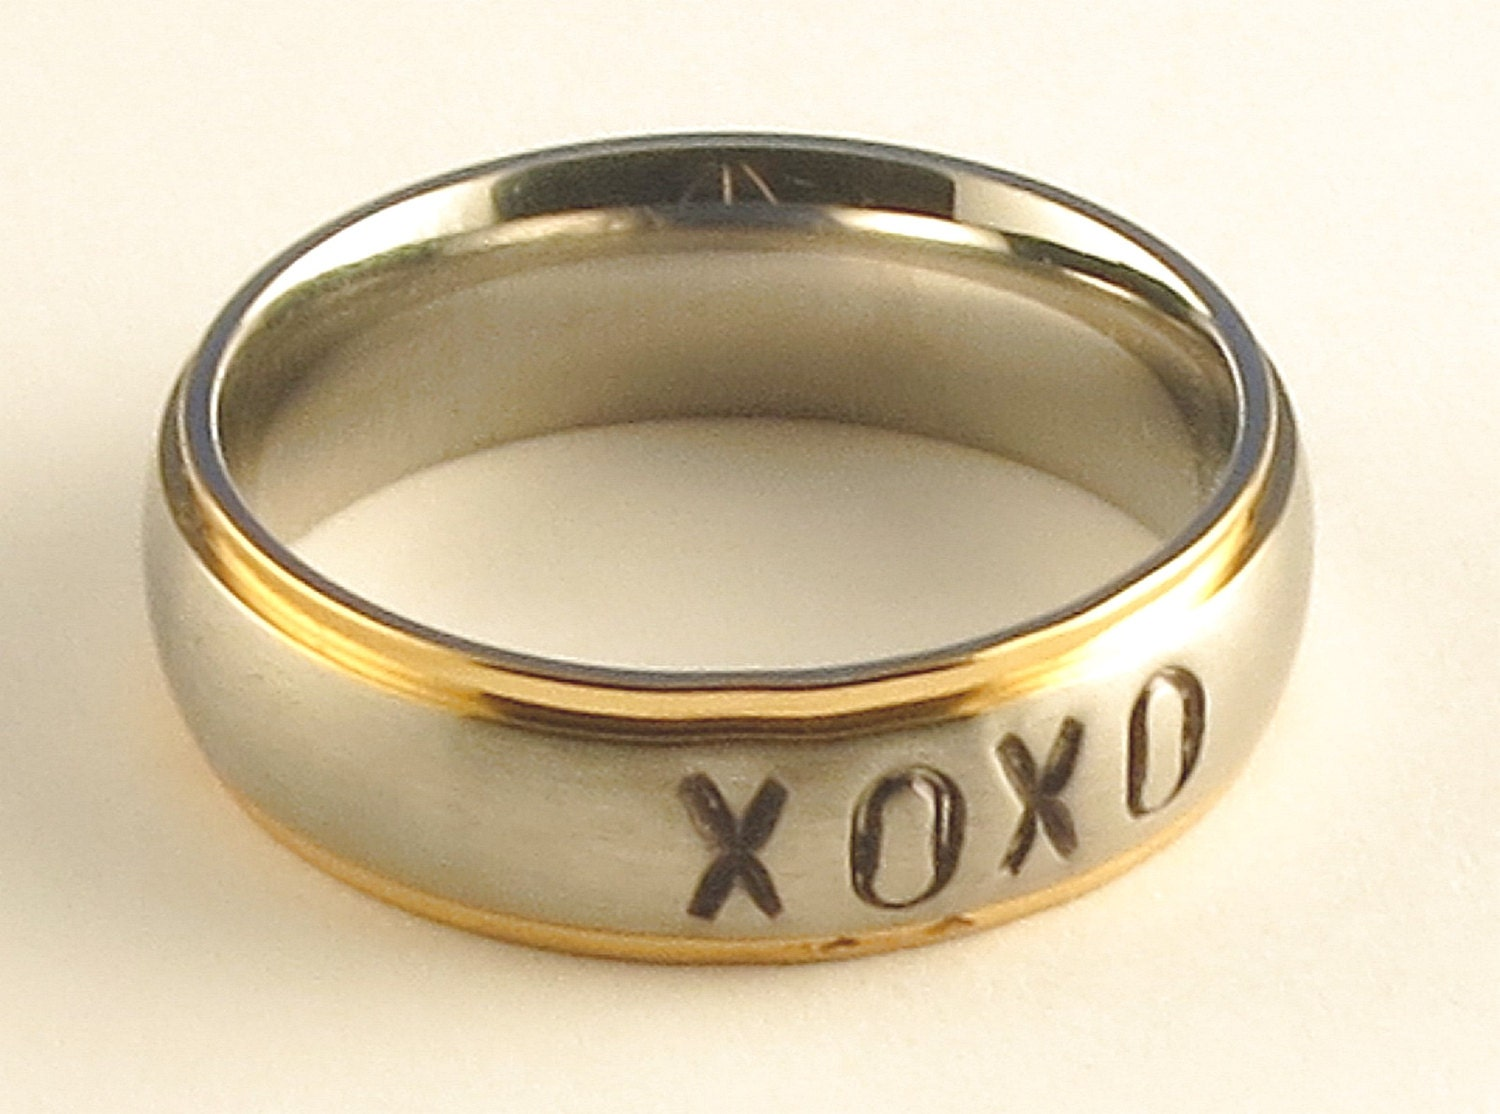 XOXO Stainless Steel Gold Tone Edge Comfort Fit Name Ring 6mm